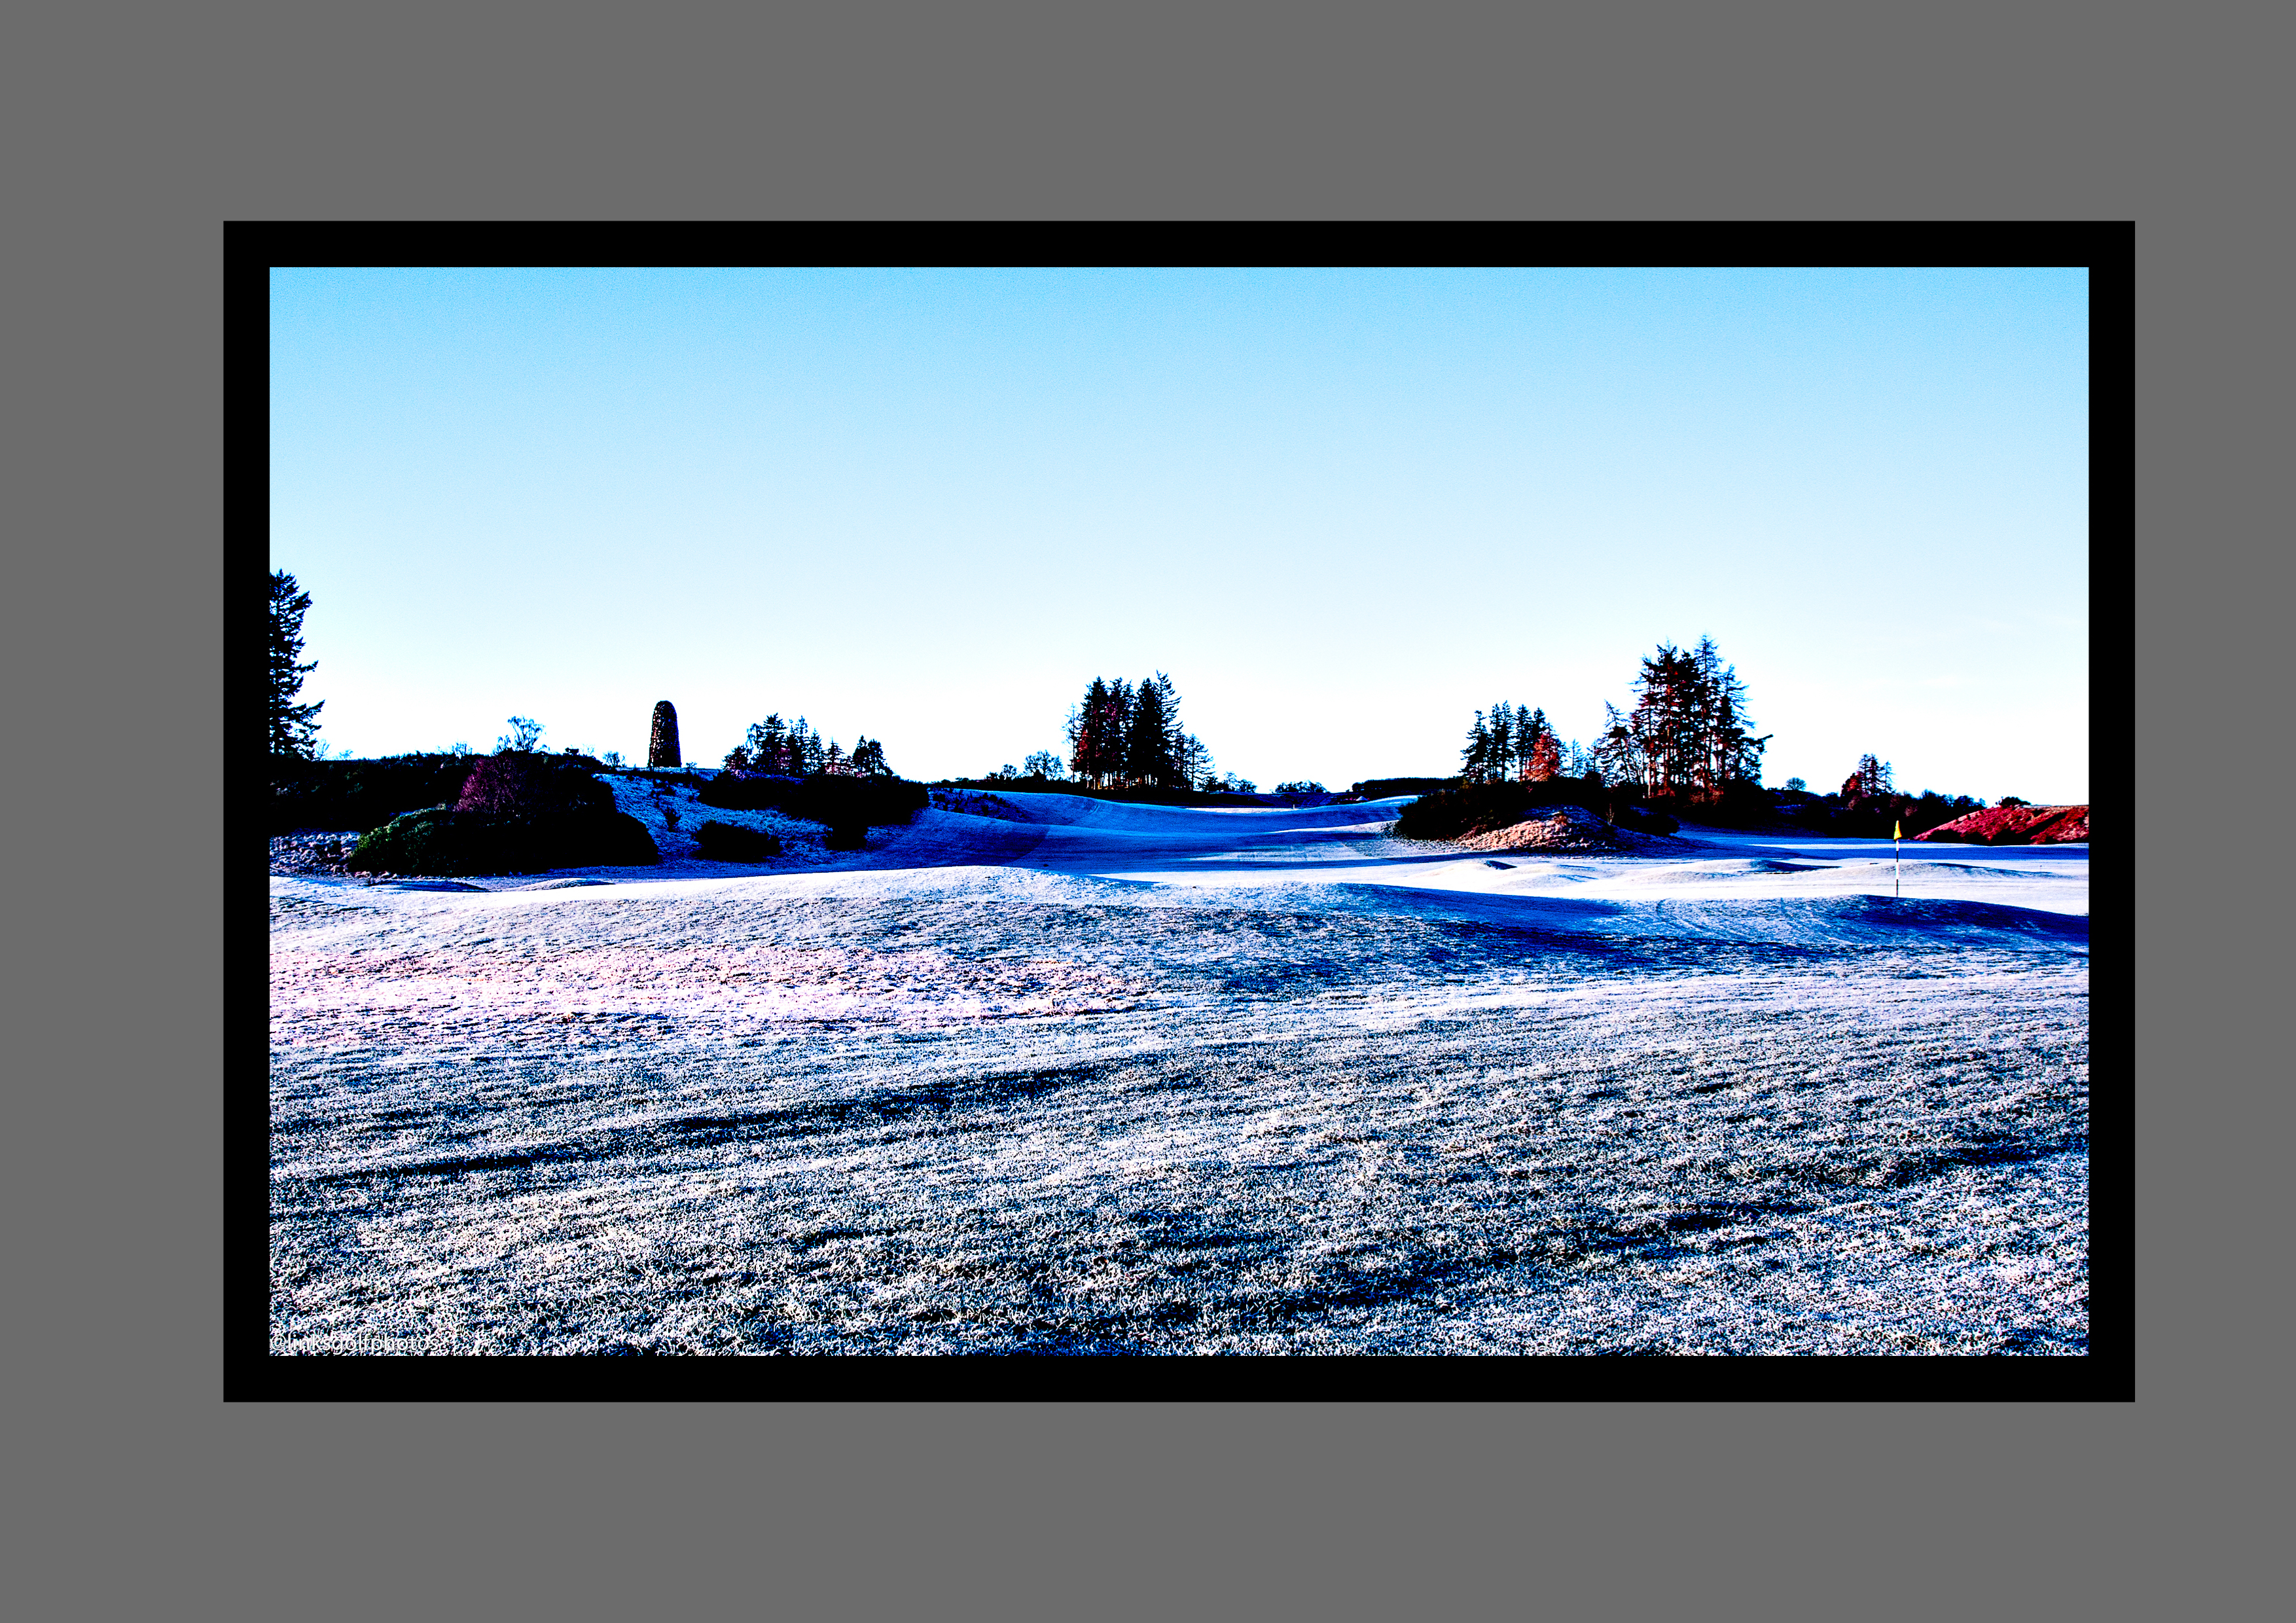 18th kings course in frost